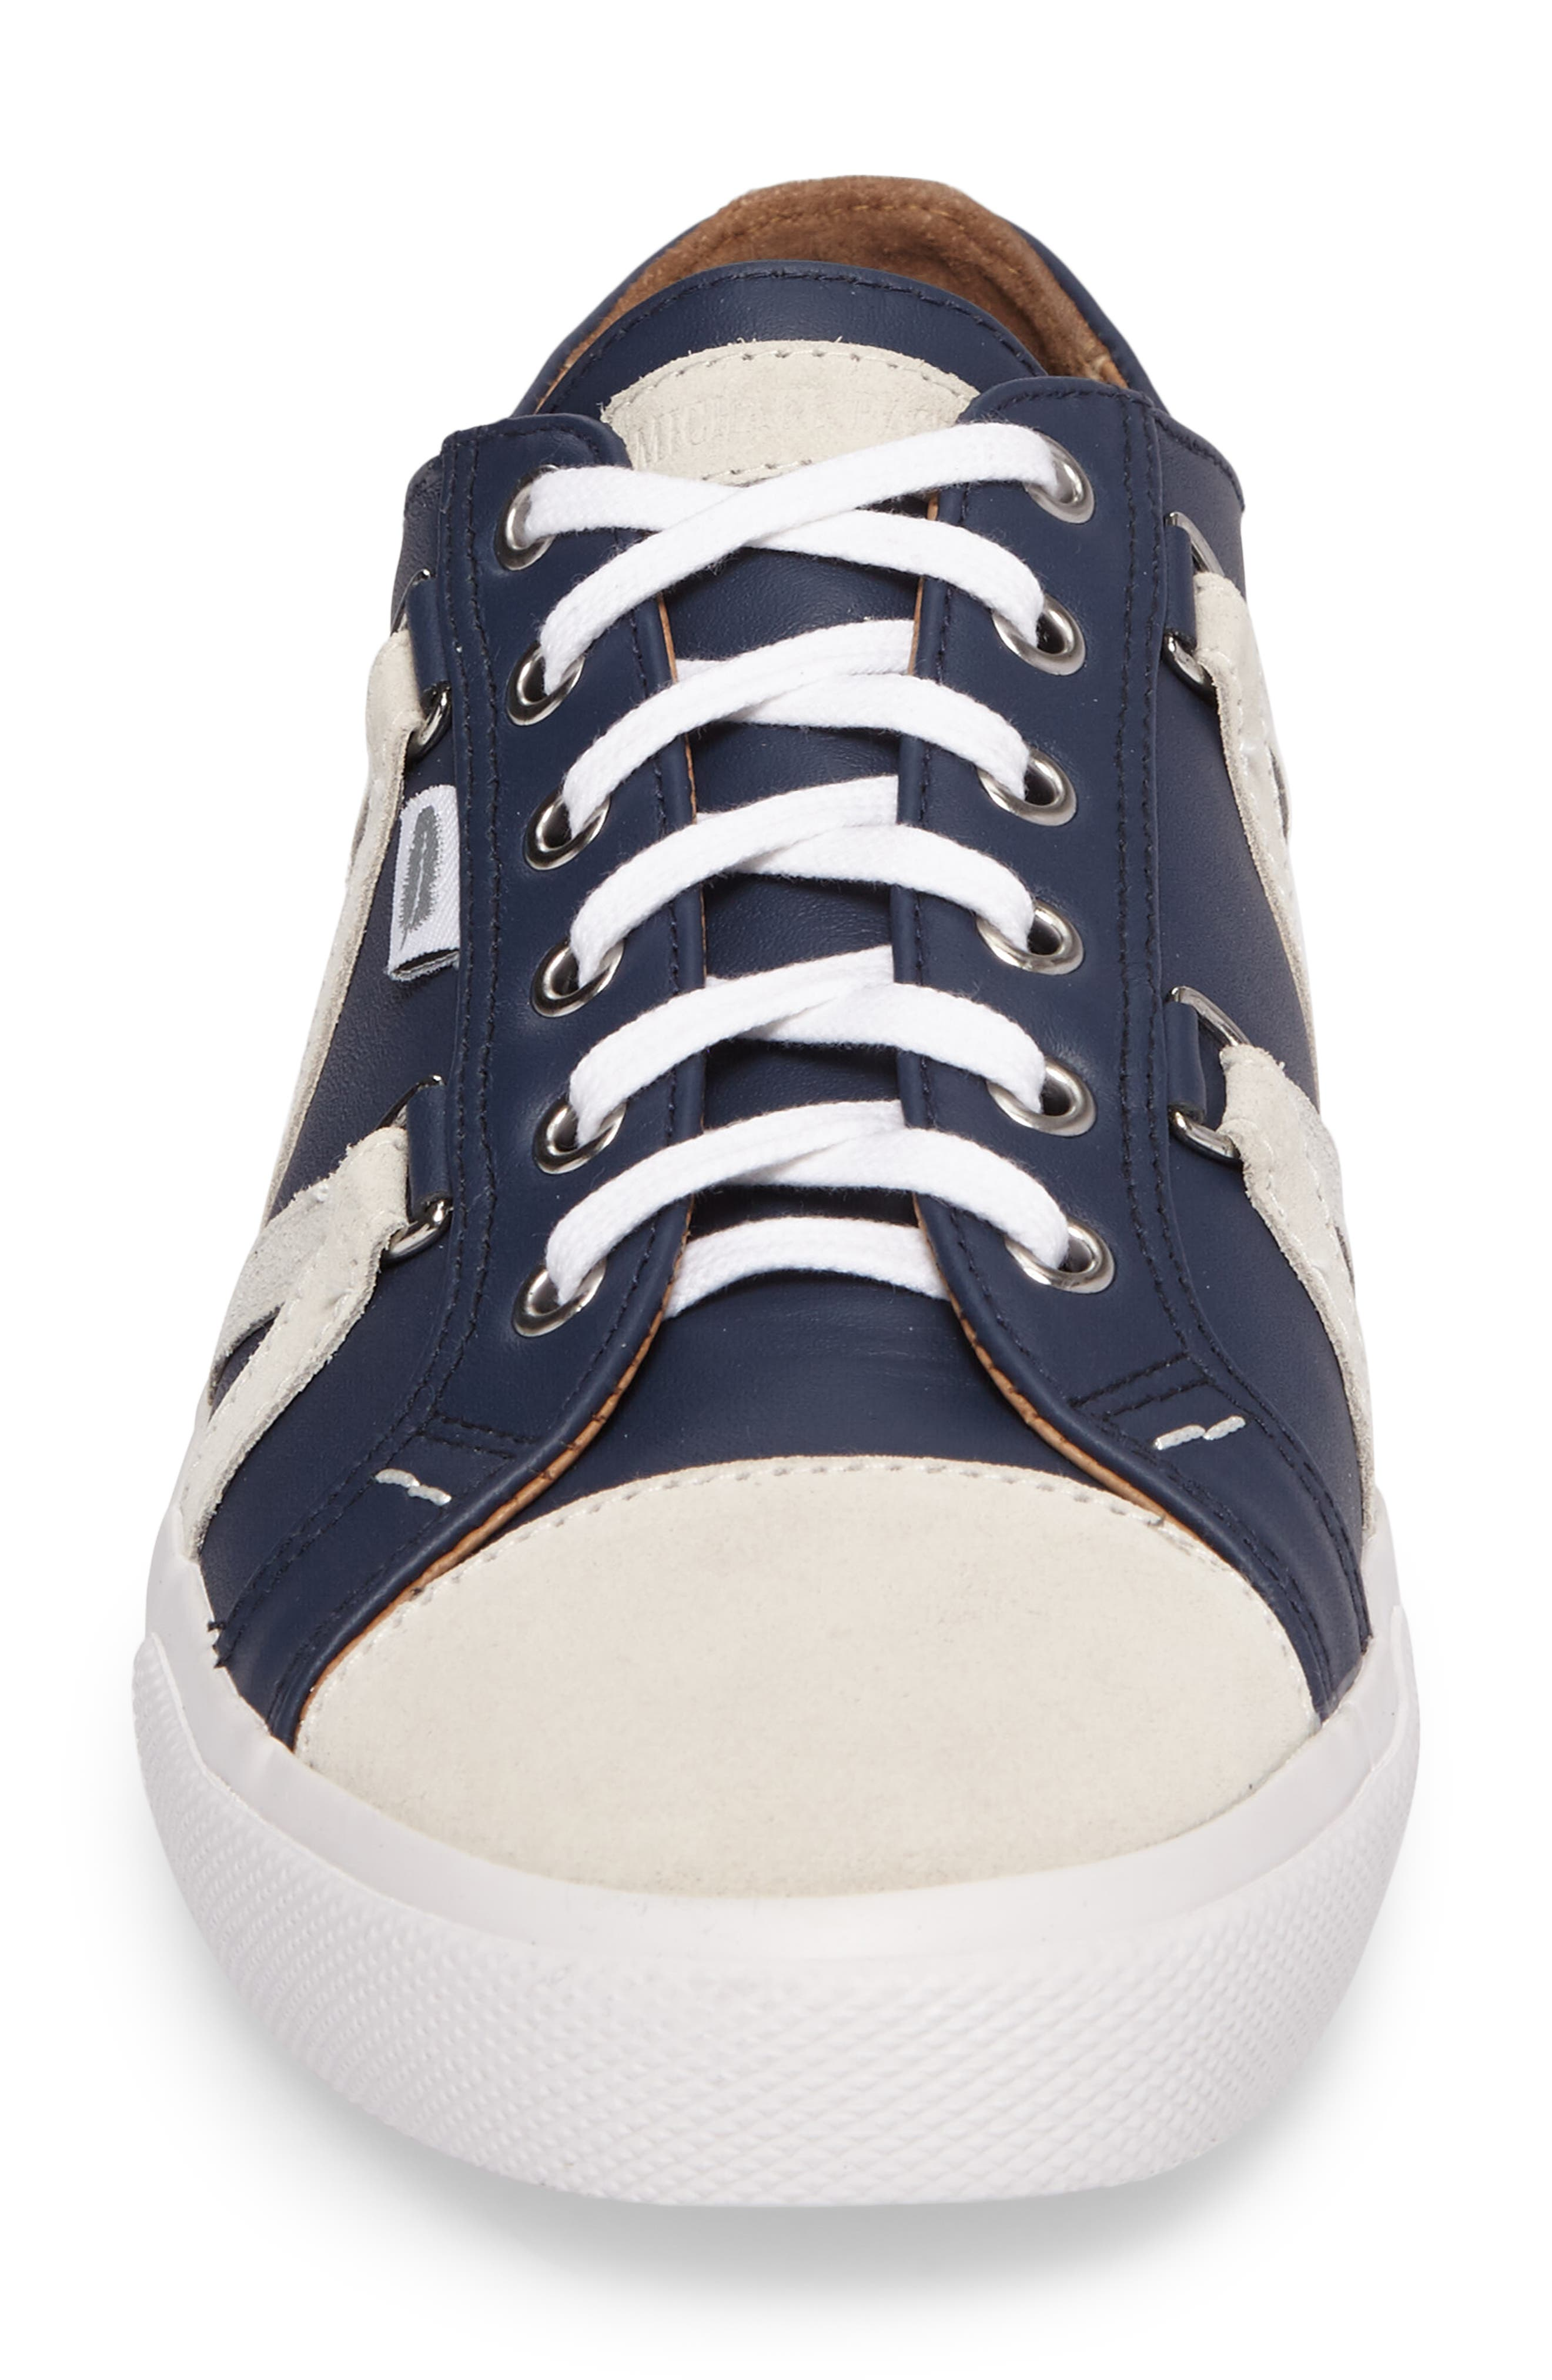 Signature Sneaker,                             Alternate thumbnail 4, color,                             NAVY LEATHER